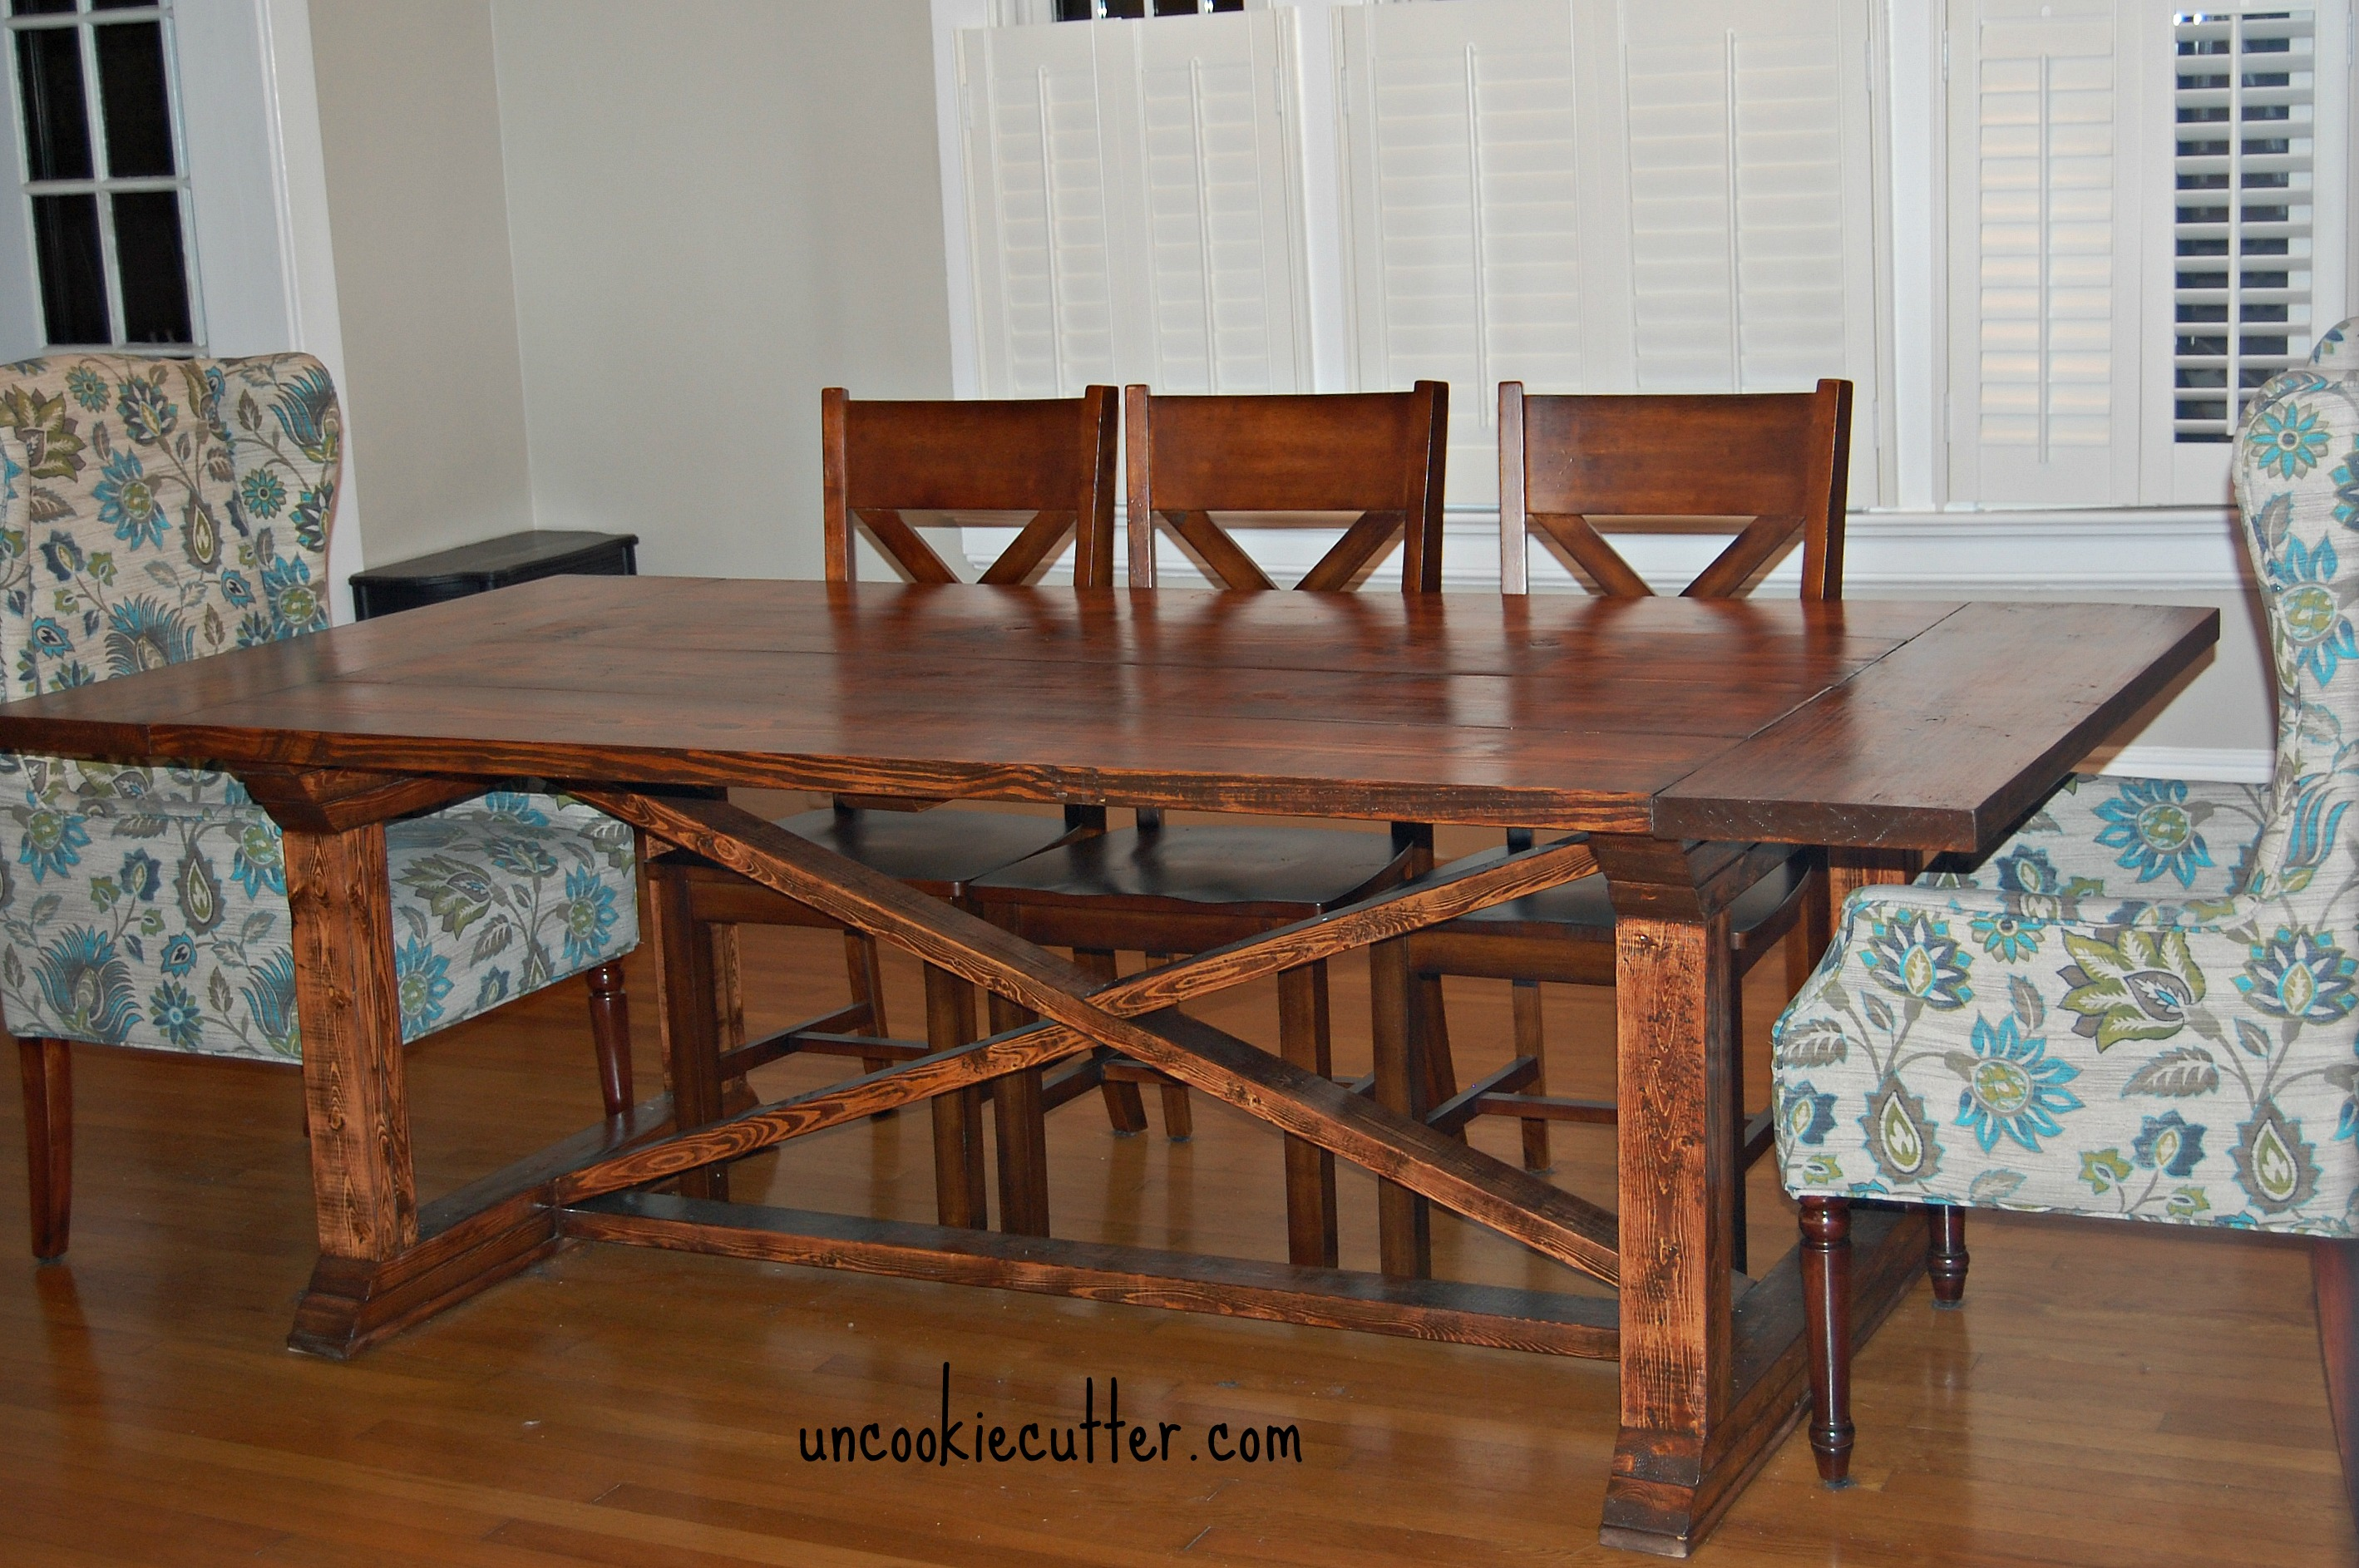 Use Ana White Plans To Create This DIY Dining Table With A Removable Top